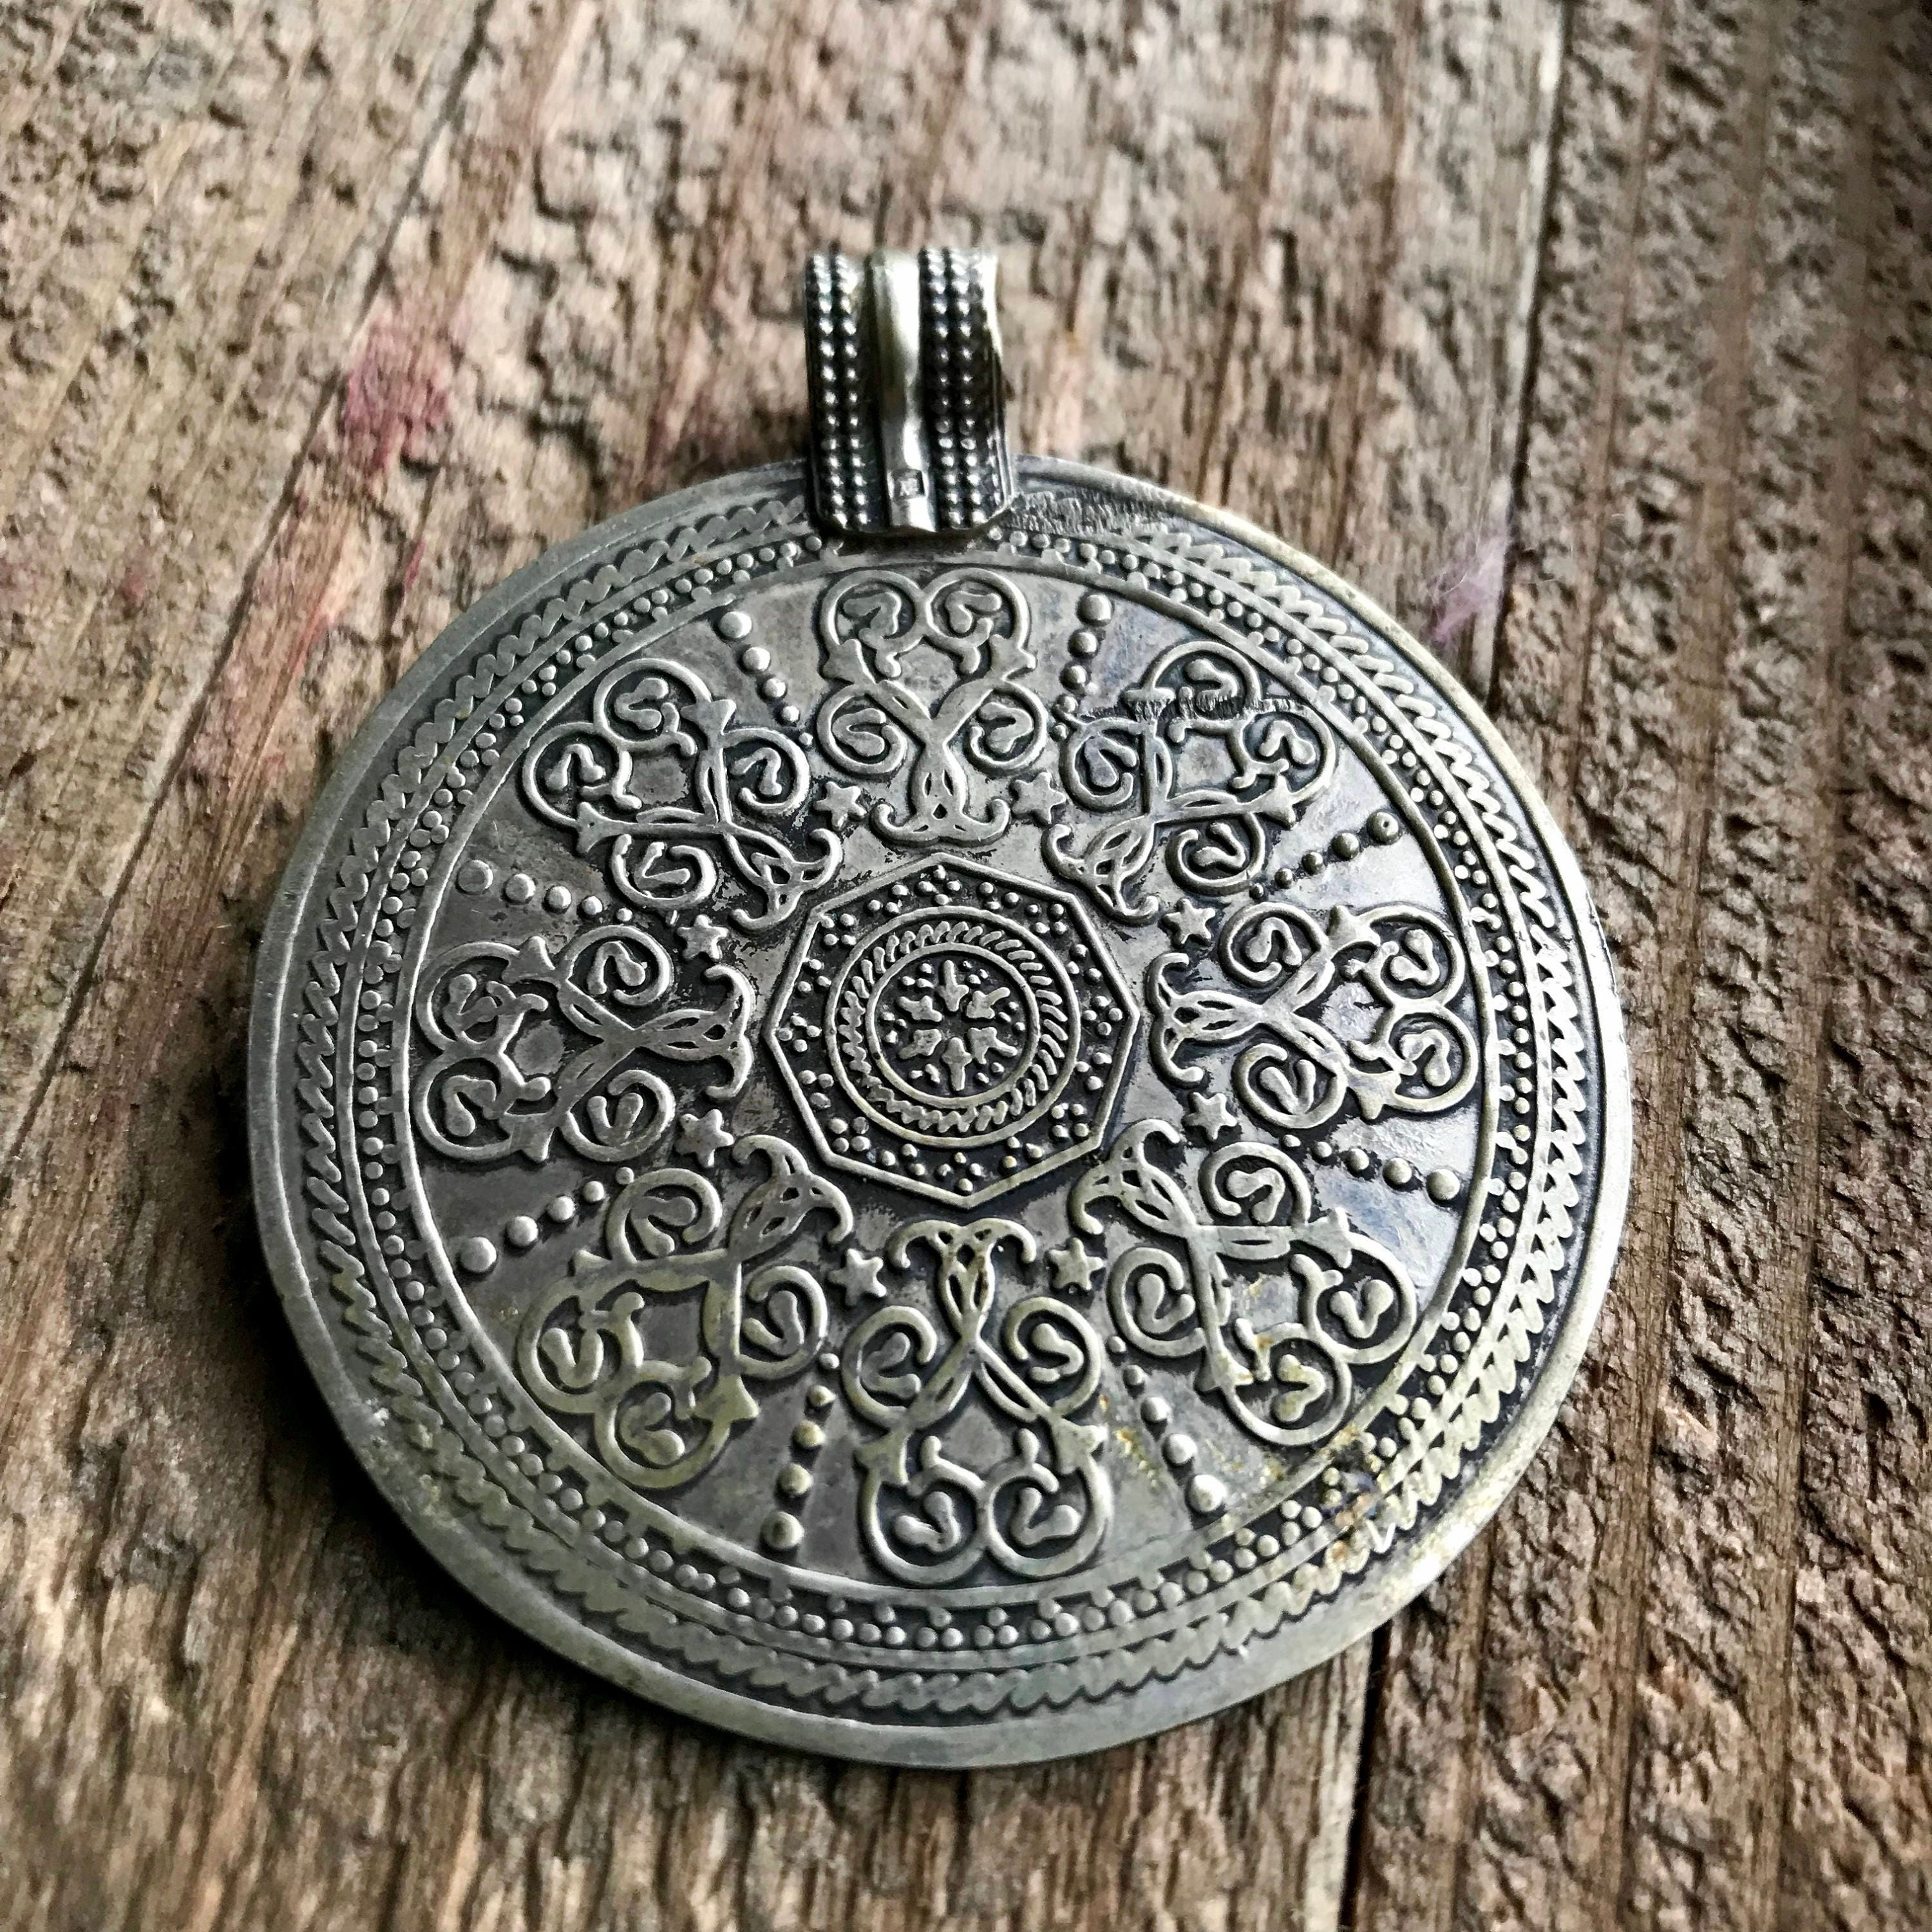 hustler spiritual products the pendant ascendant frequency holistic